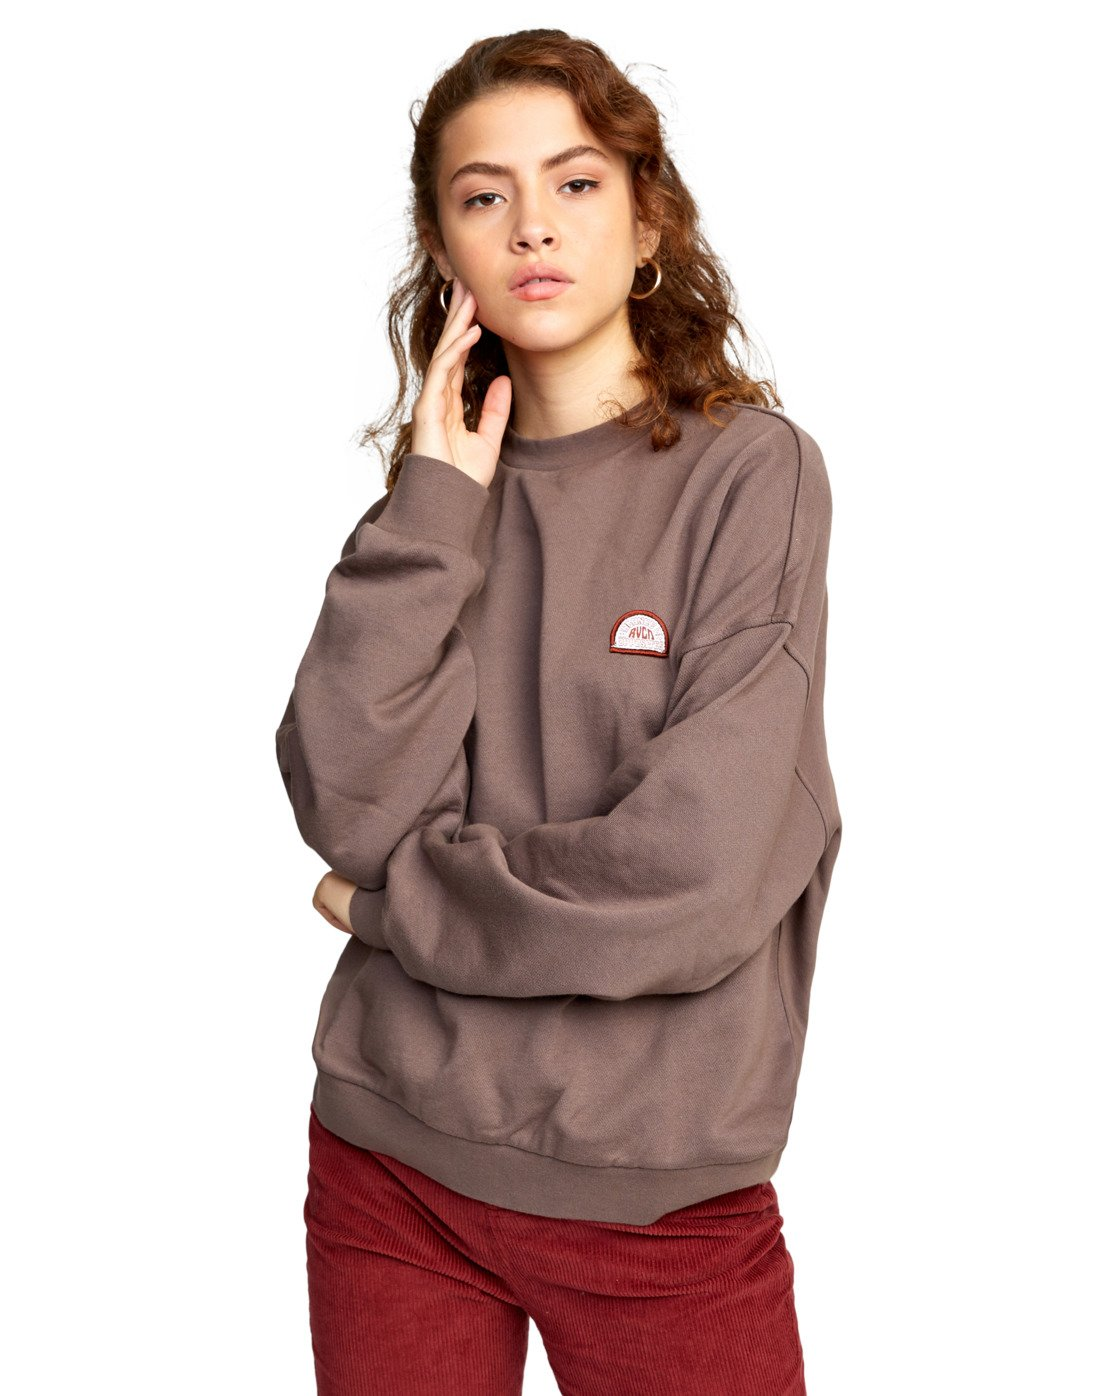 0 POINT DUME PULLOVER  AVJSF00111 RVCA